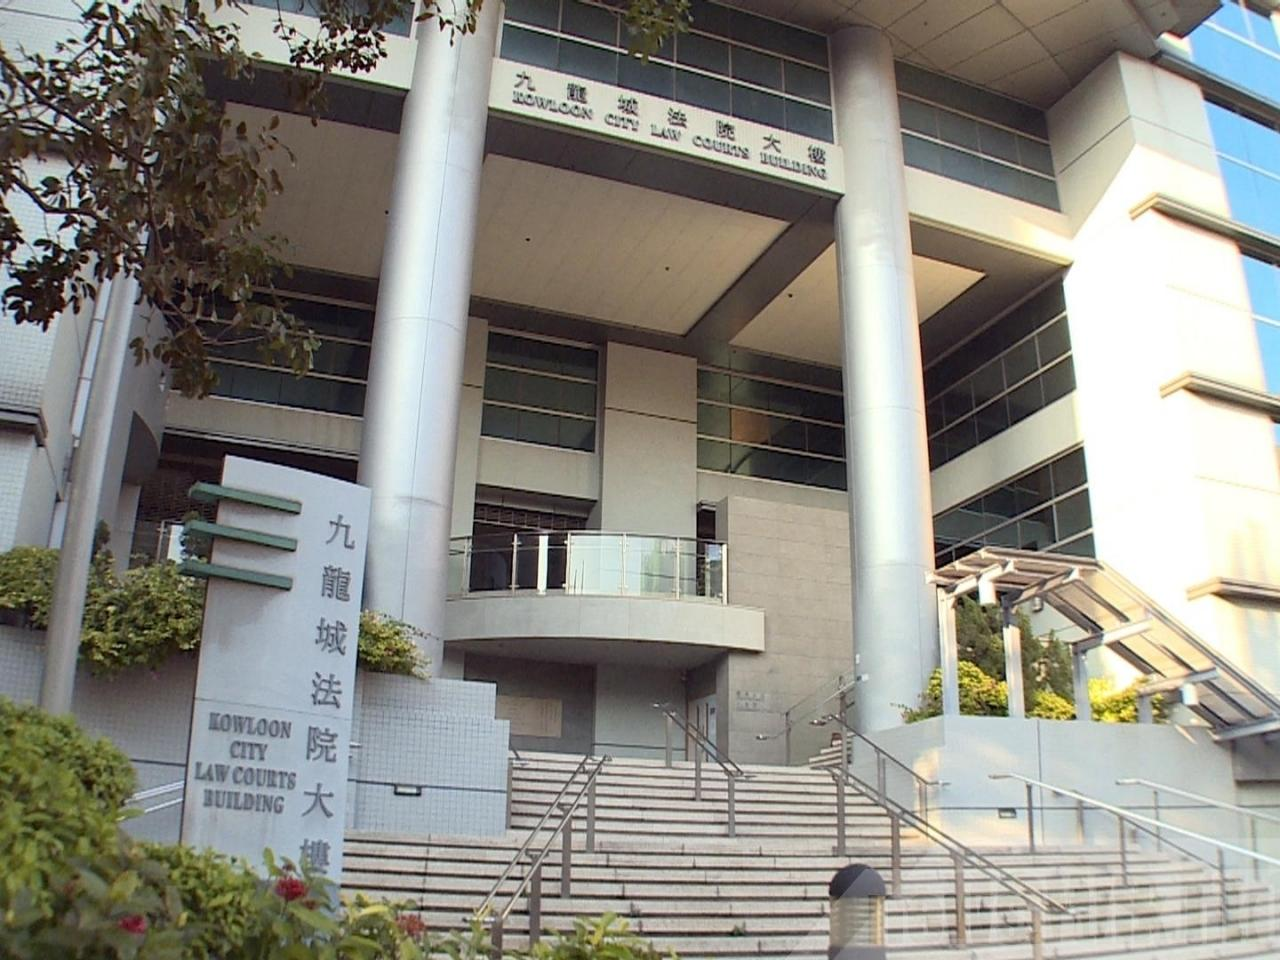 Principal magistrate Ada Yim says she 'must review herself' because a suspended term is different from an immediate custodial sentence. File photo: RTHK